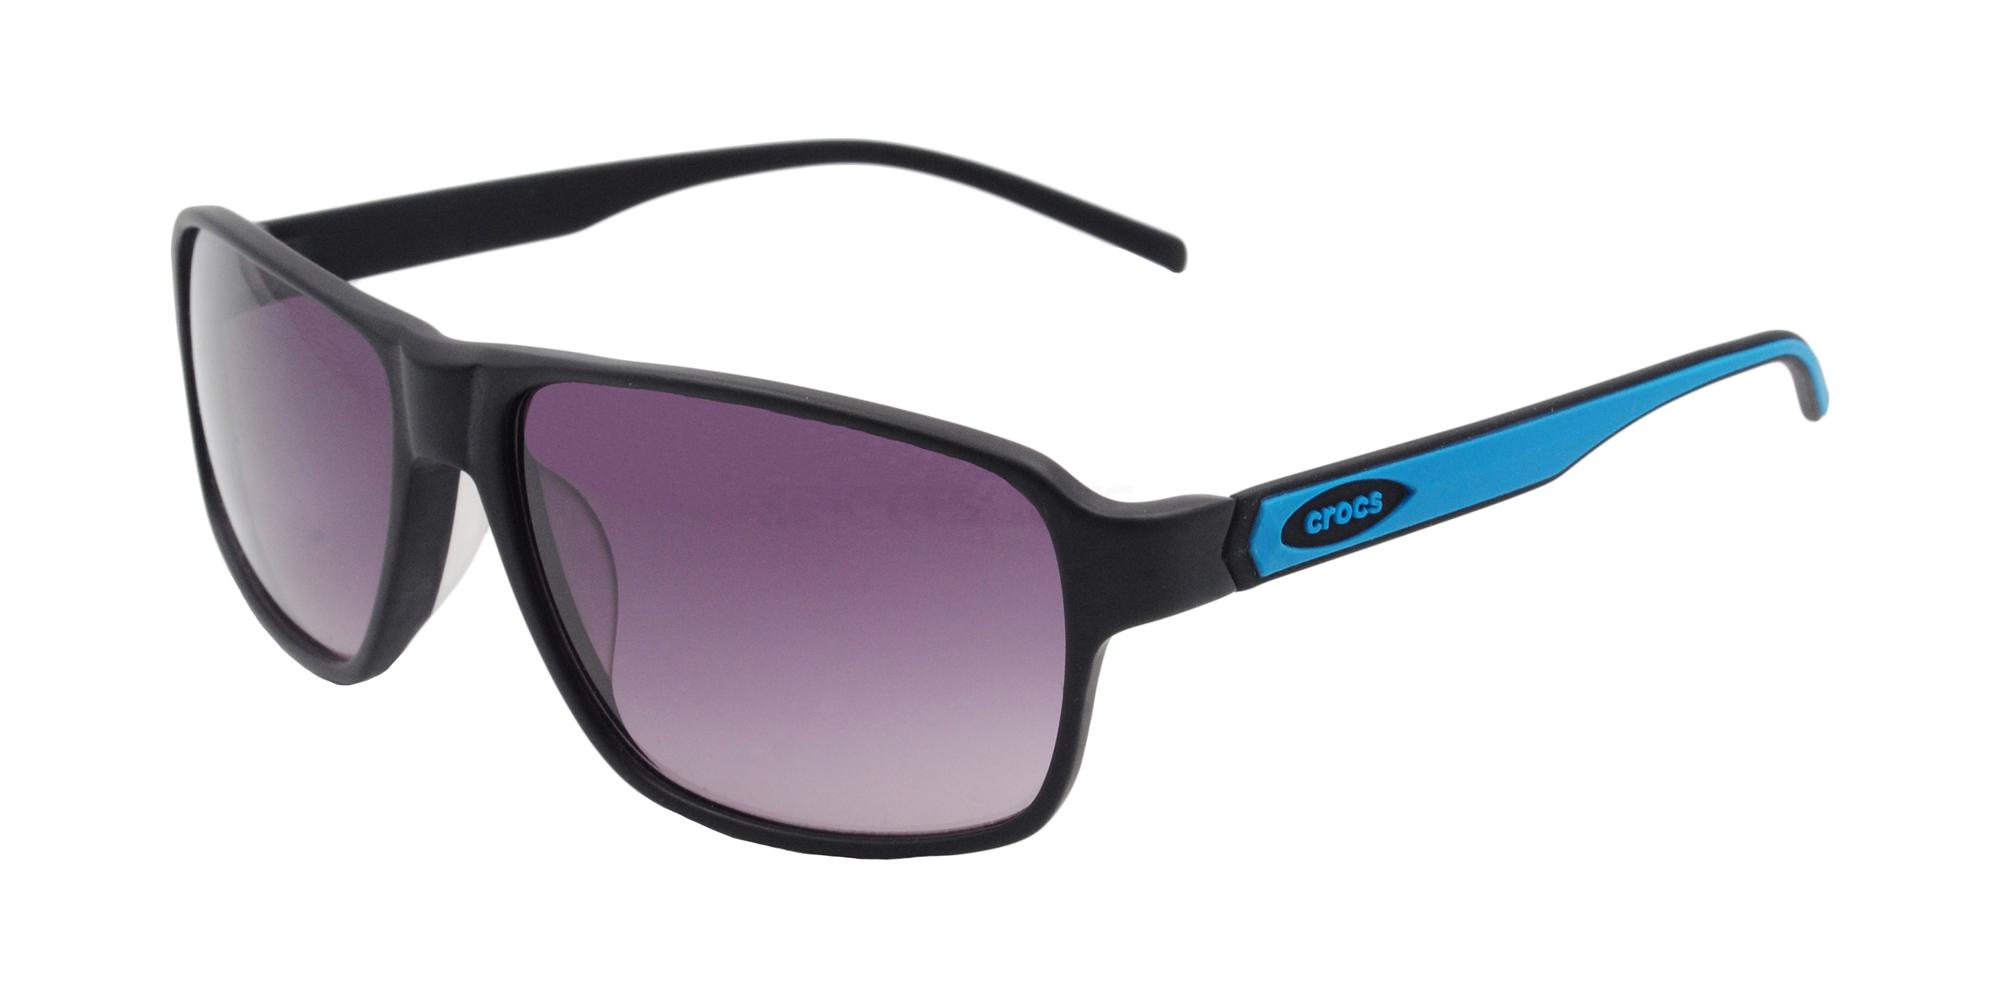 20BK CS4105 Sunglasses, Crocs Eyewear